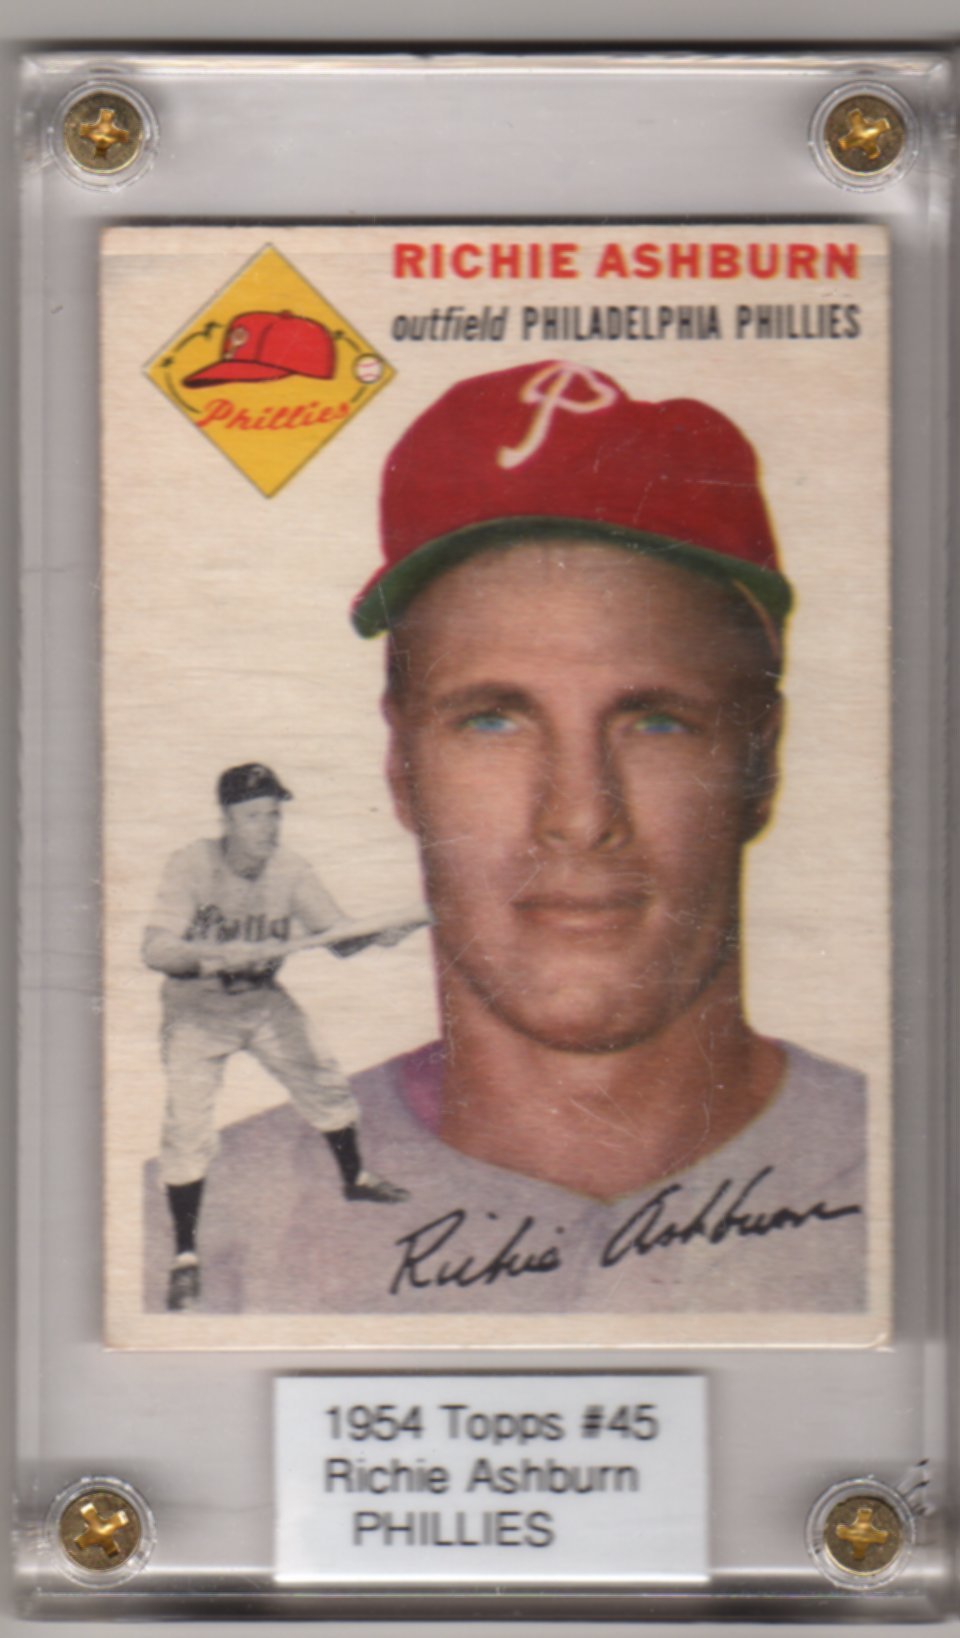 1954 Topps #45 Richie Ashburn